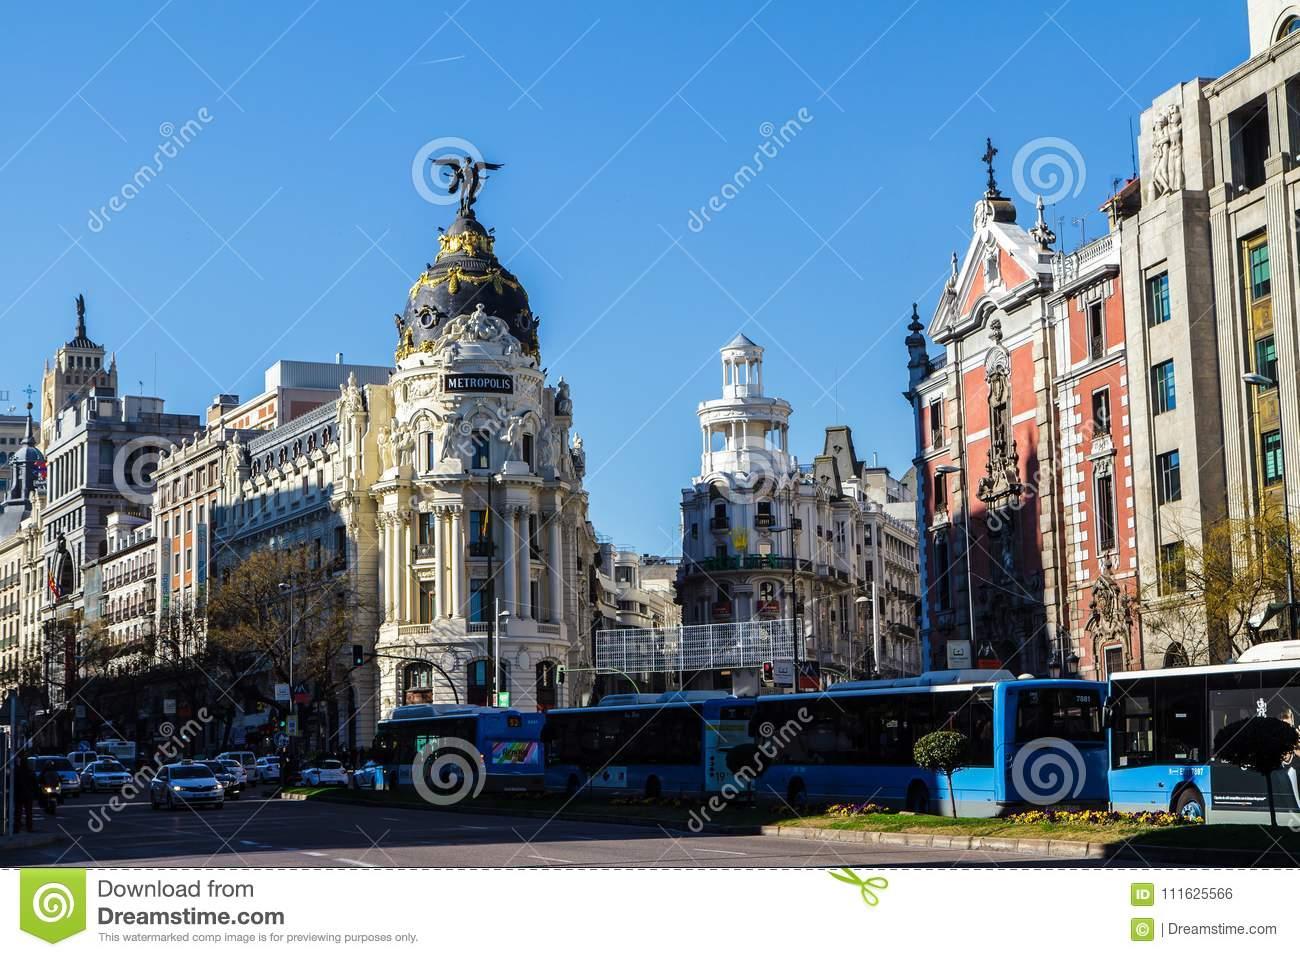 Downtown Madrid, Spain, where the Calle de Alcala meets the Gran Via. These are some of the most famous and busy streets in Madrid